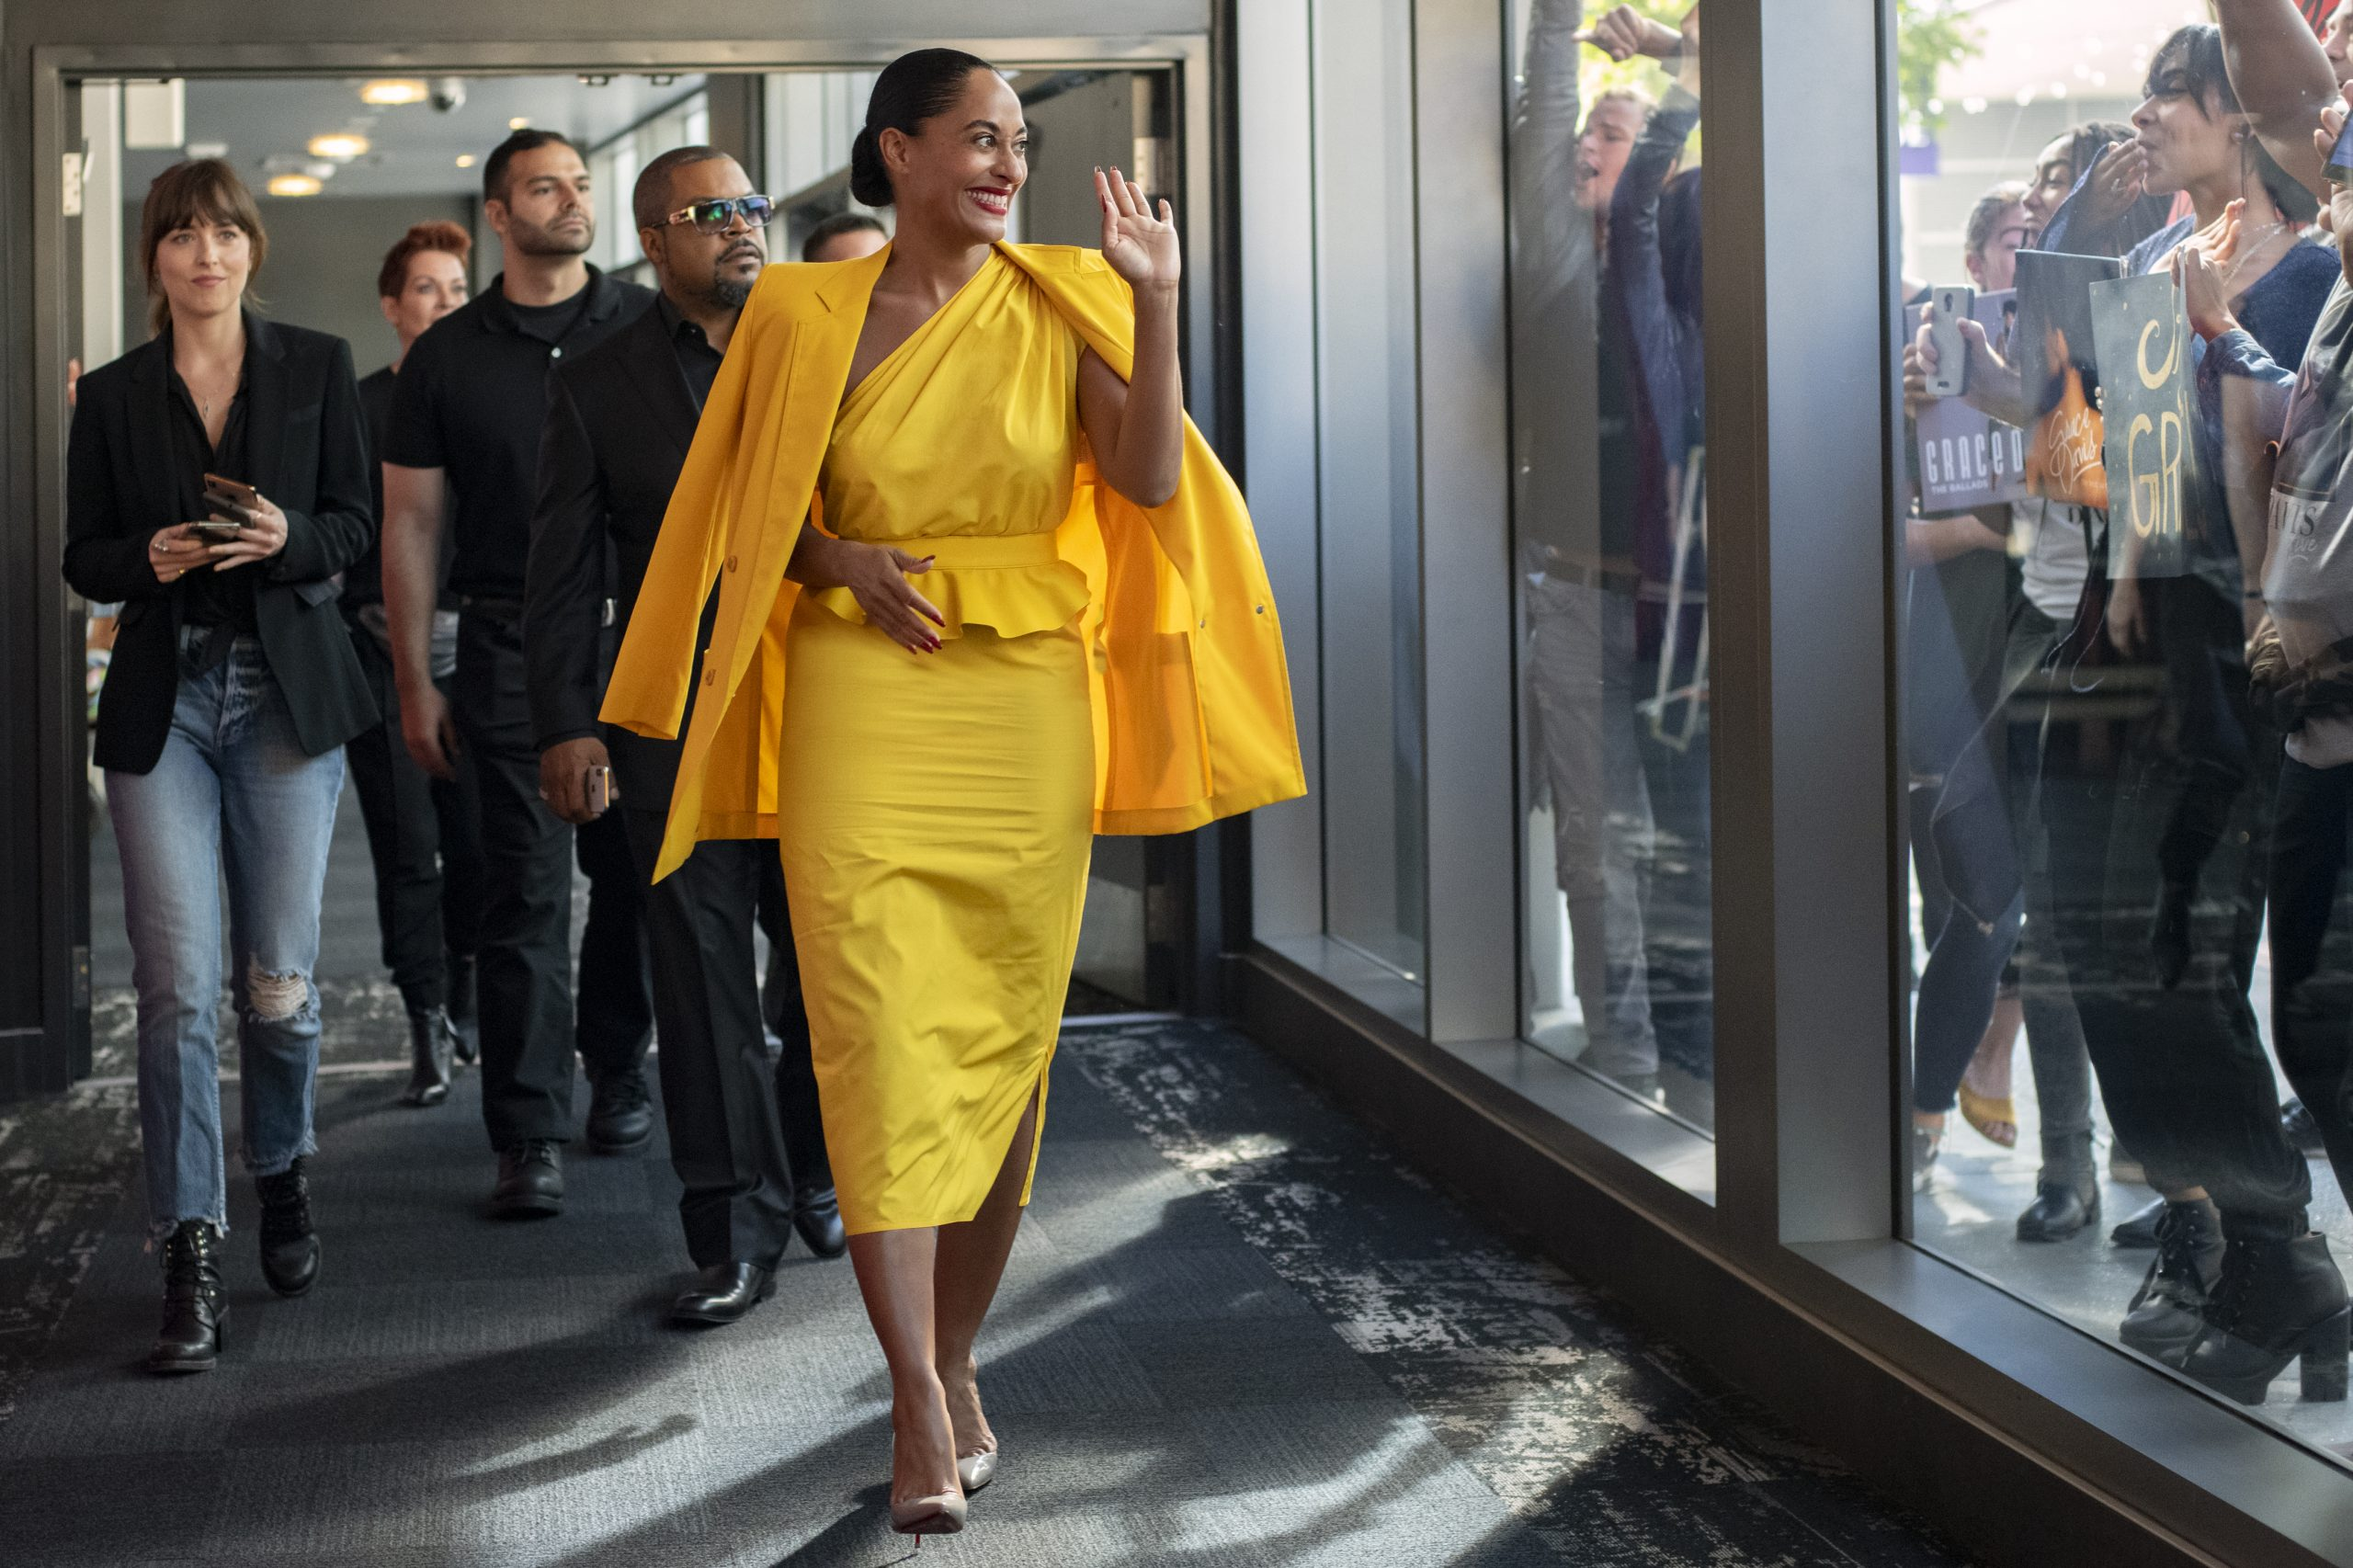 Traci Ellis Ross The High Note. The High Note Movie 2020